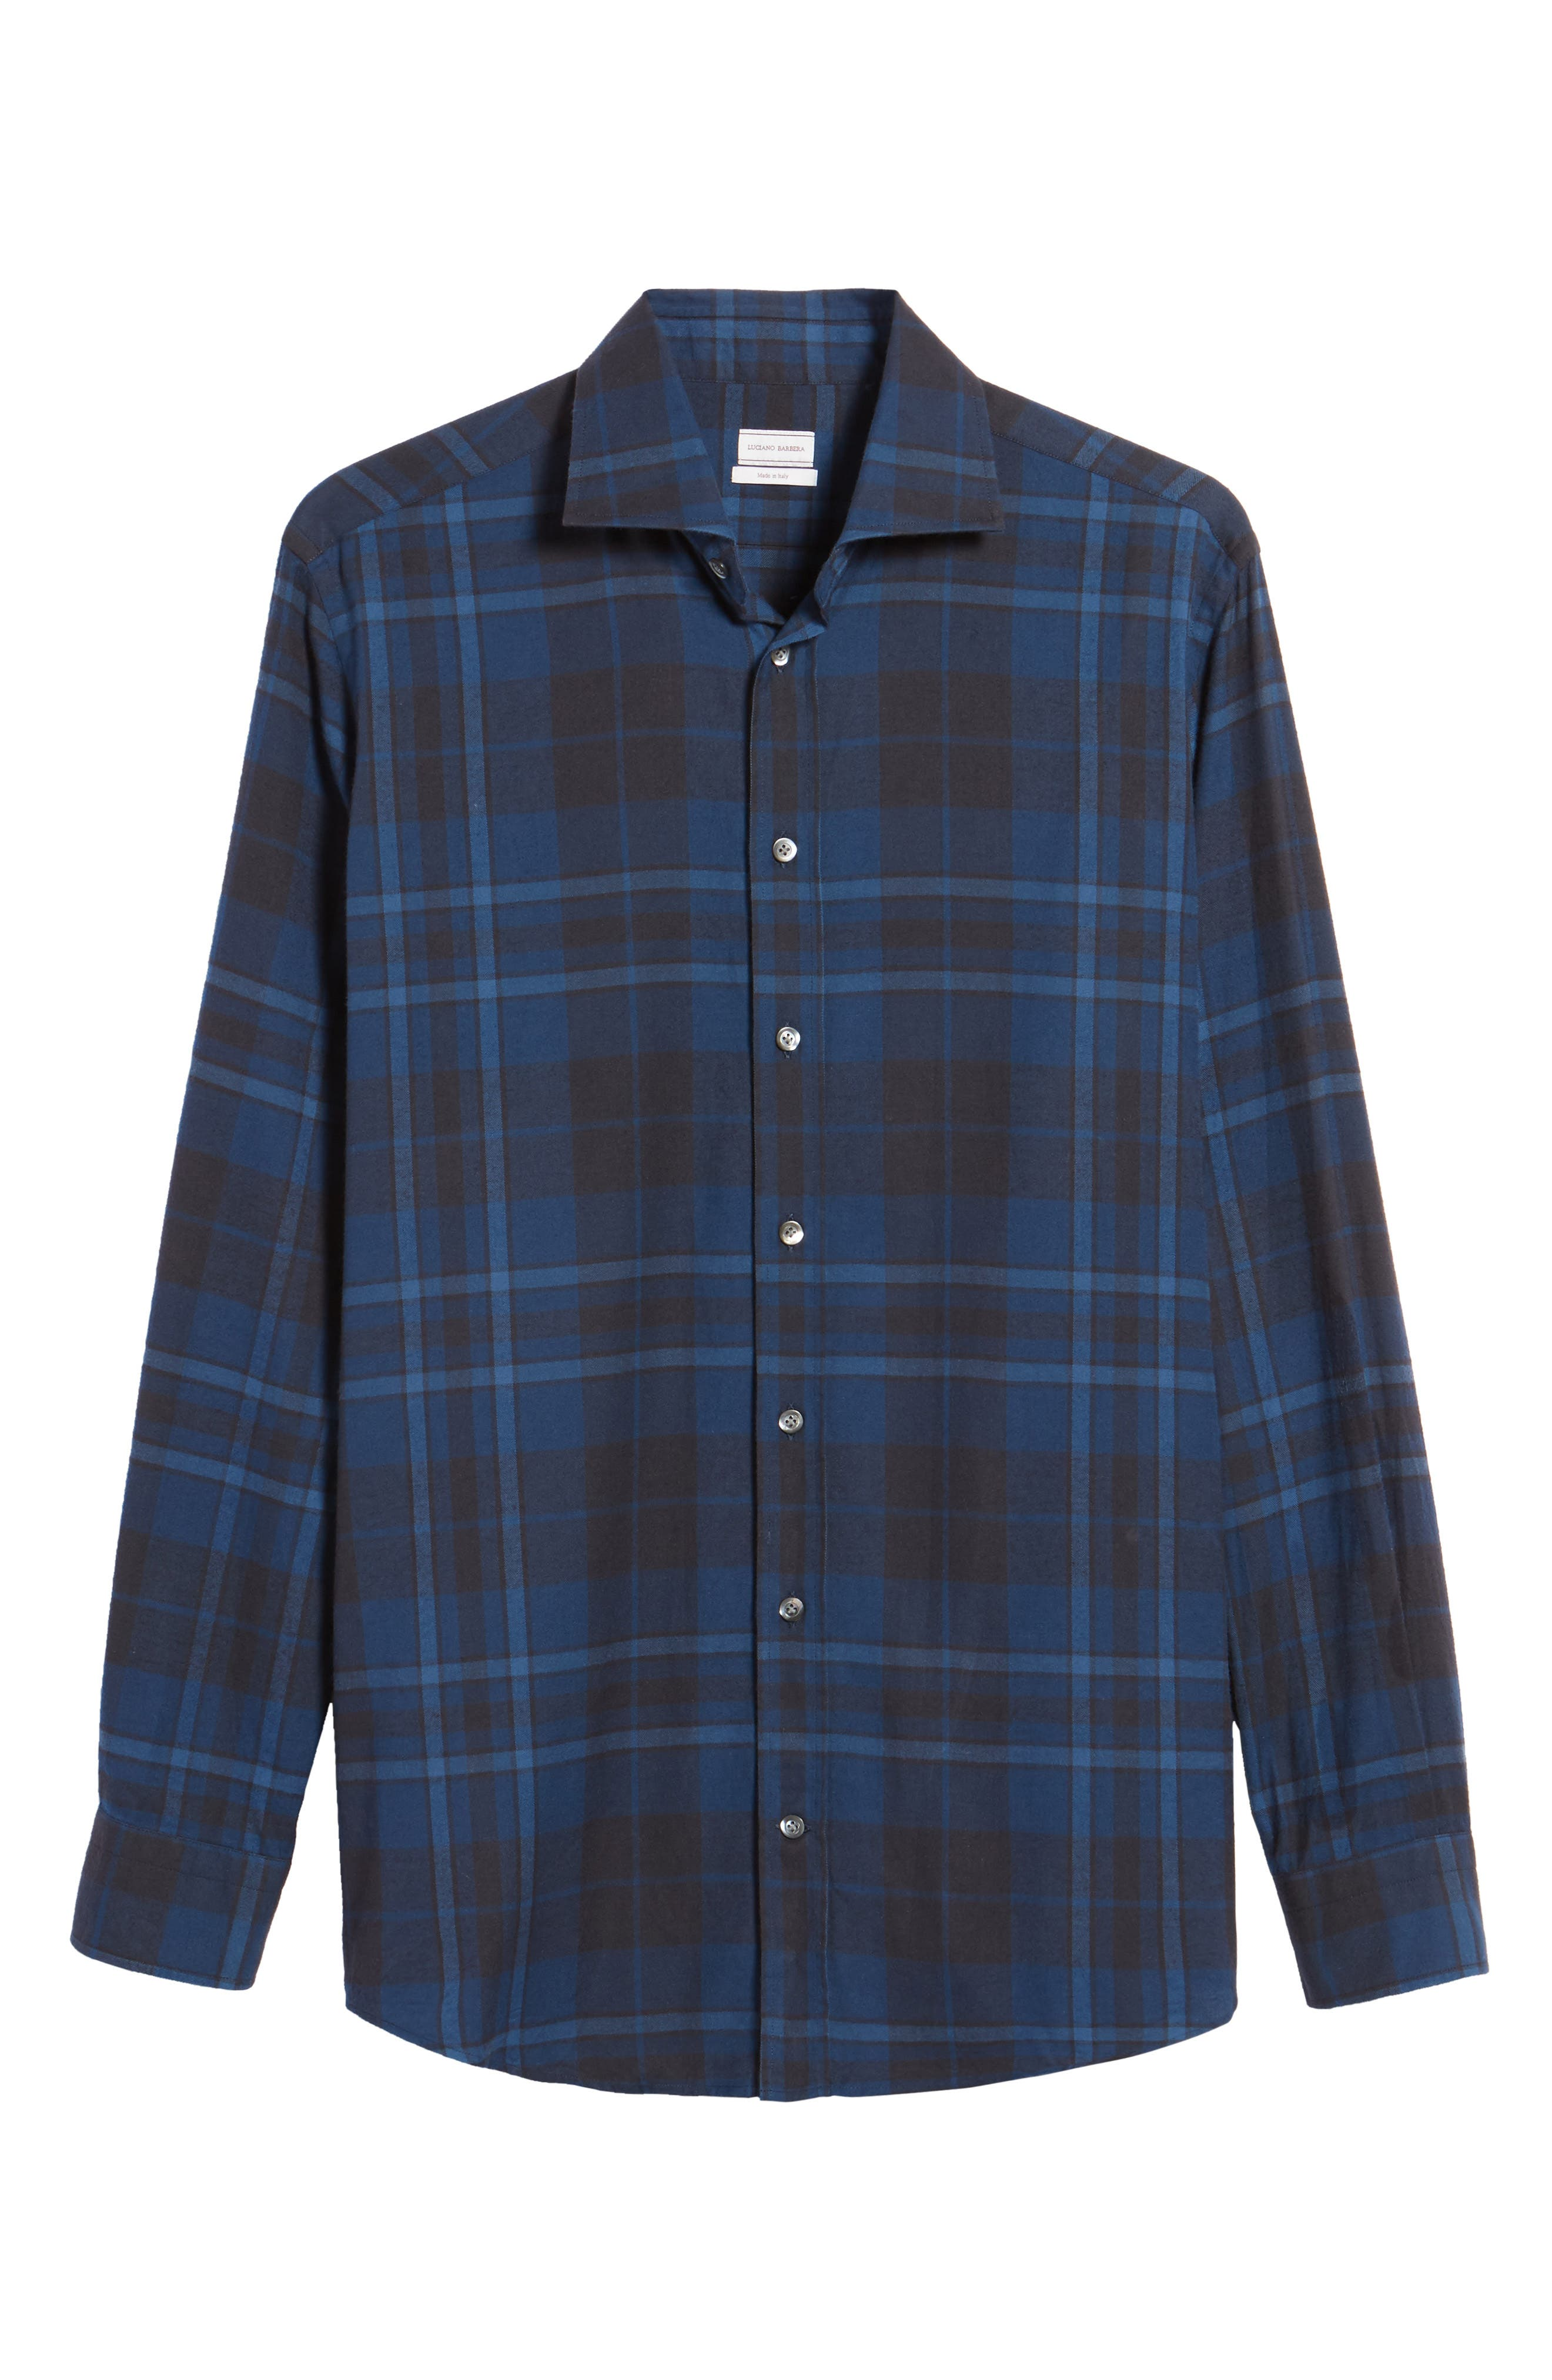 Trim Fit Plaid Sport Shirt,                             Alternate thumbnail 6, color,                             421